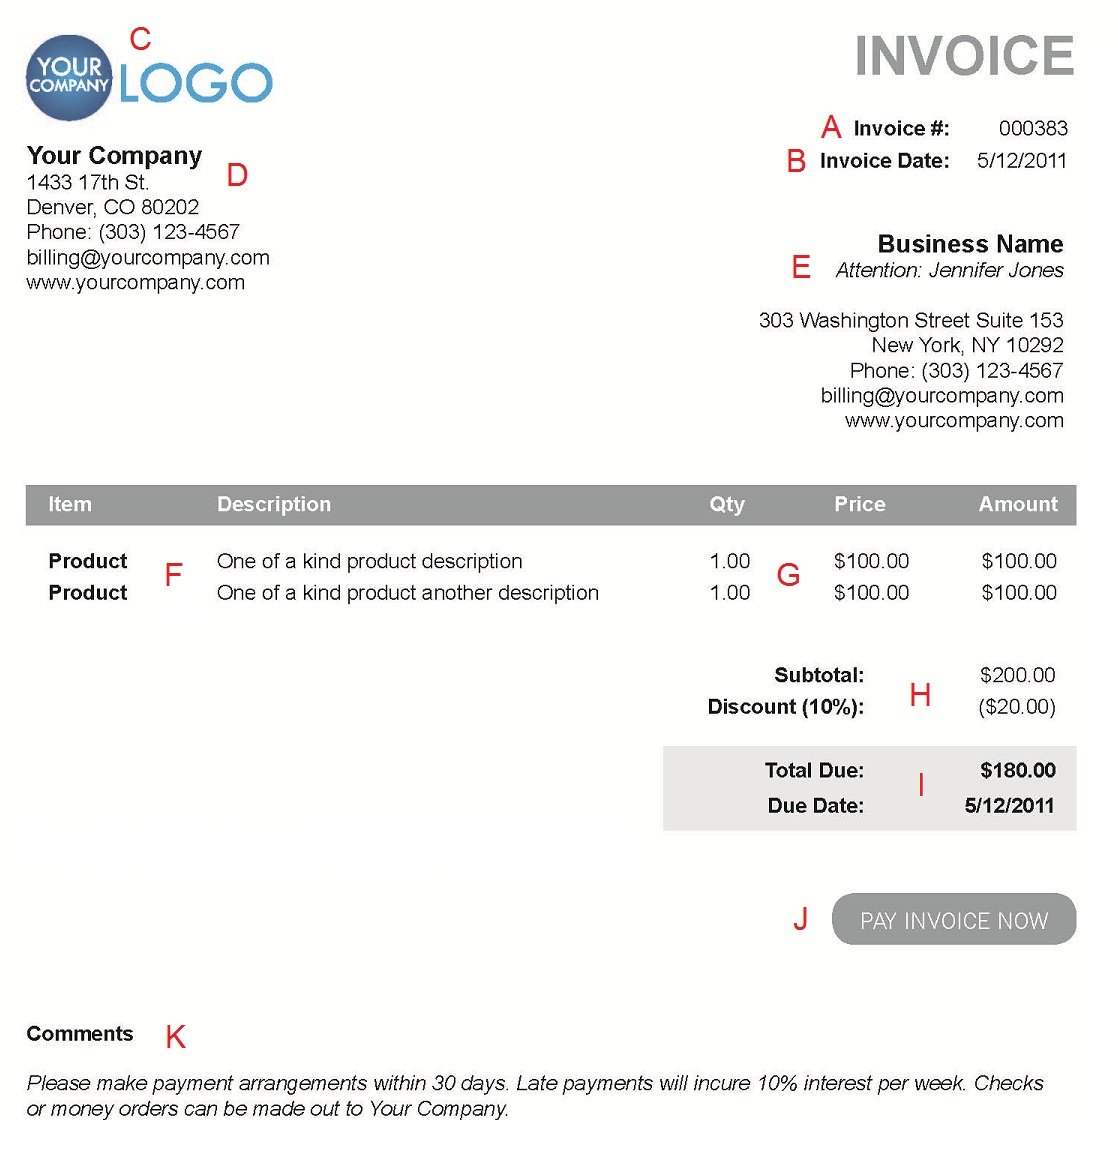 Bringjacobolivierhomeus  Nice The  Different Sections Of An Electronic Payment Invoice With Exciting A  With Agreeable Receipt For Money Also Air Force Hand Receipt Form In Addition Paid Receipt Form And Printable Receipt Templates As Well As How To Send Email With Read Receipt Additionally Neat Receipts Scanner Review From Paysimplecom With Bringjacobolivierhomeus  Exciting The  Different Sections Of An Electronic Payment Invoice With Agreeable A  And Nice Receipt For Money Also Air Force Hand Receipt Form In Addition Paid Receipt Form From Paysimplecom